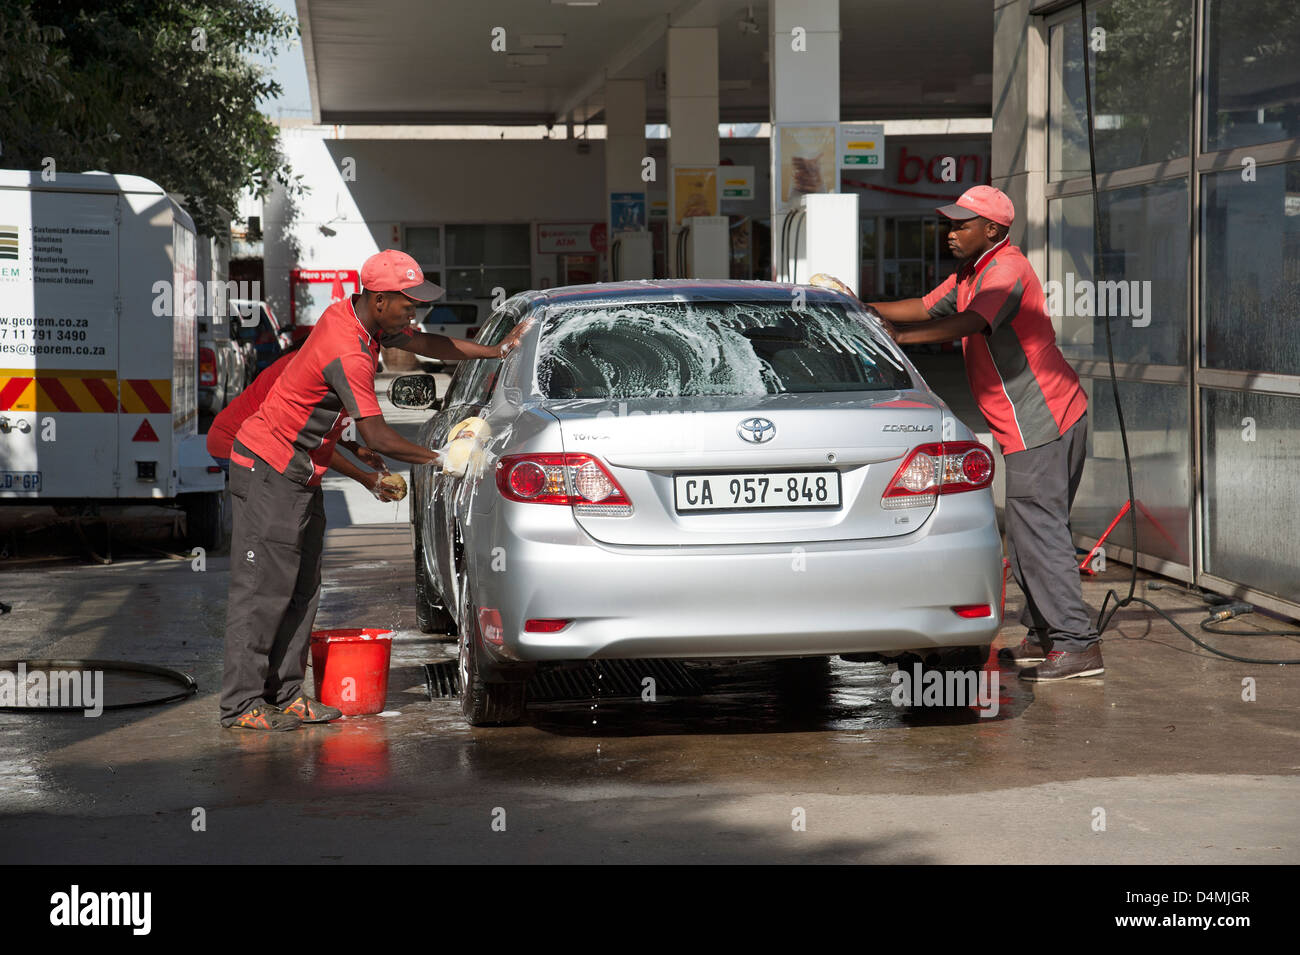 Hand car wash business washing and drying a vehicle - Stock Image